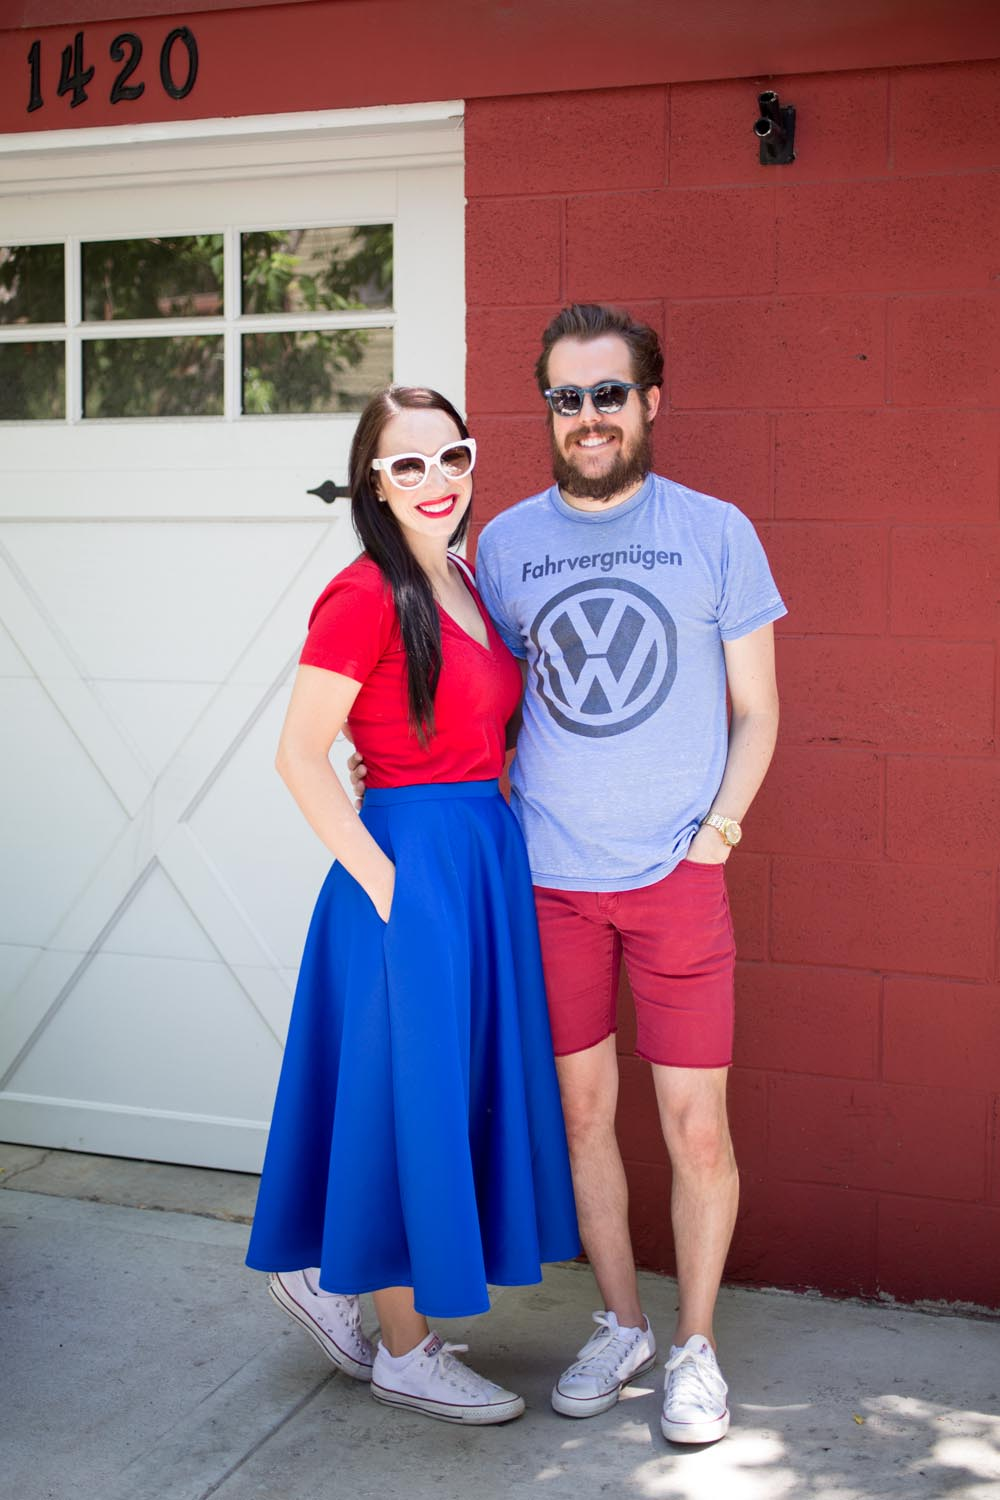 4th of July Outfit Inspiration for Couples